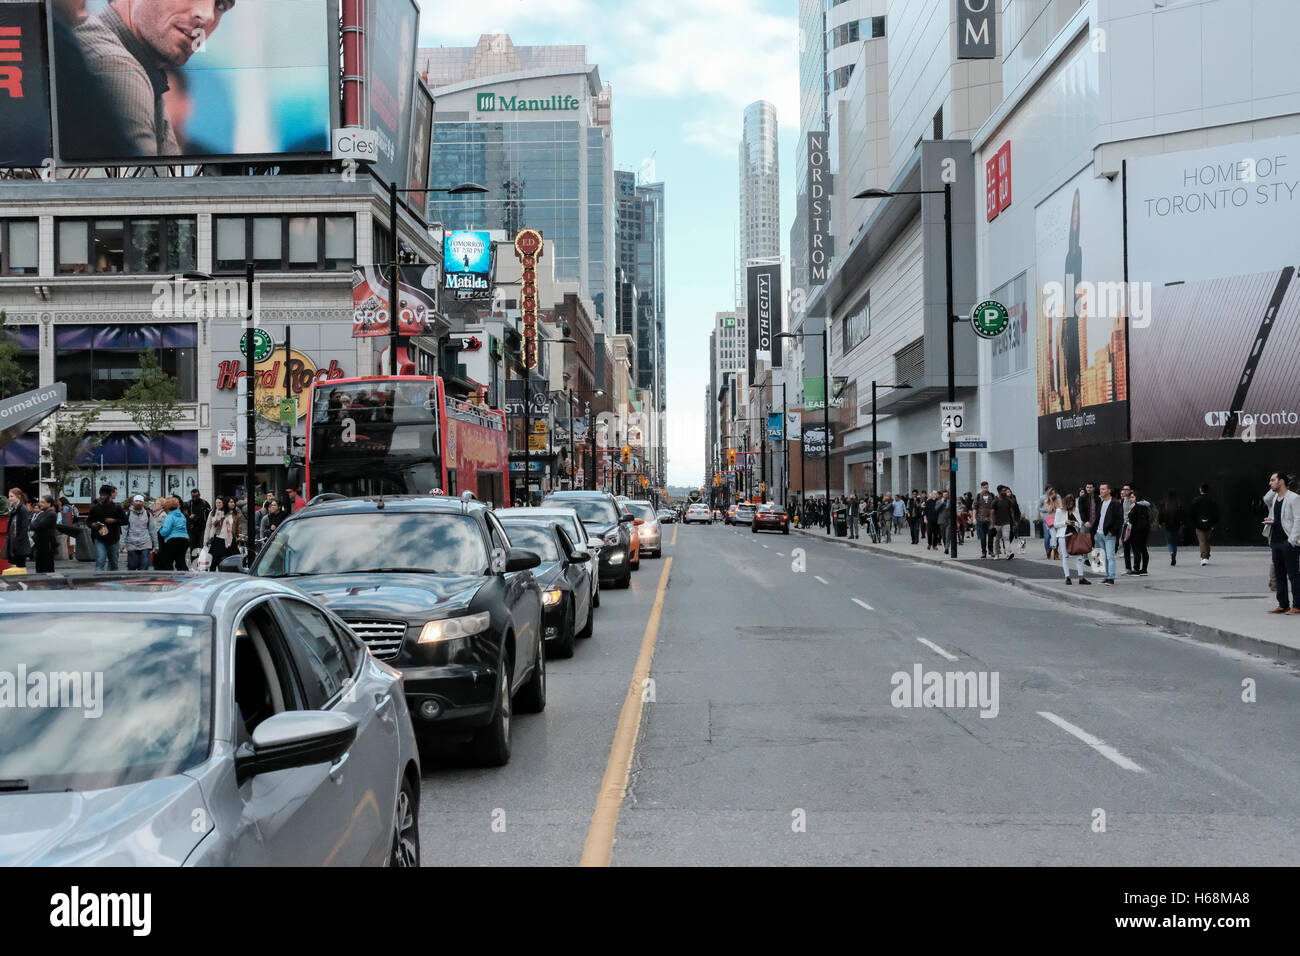 Heavy traffic congestion in a busy Toronto, Canada. The exit to the city is completely empty. - Stock Image